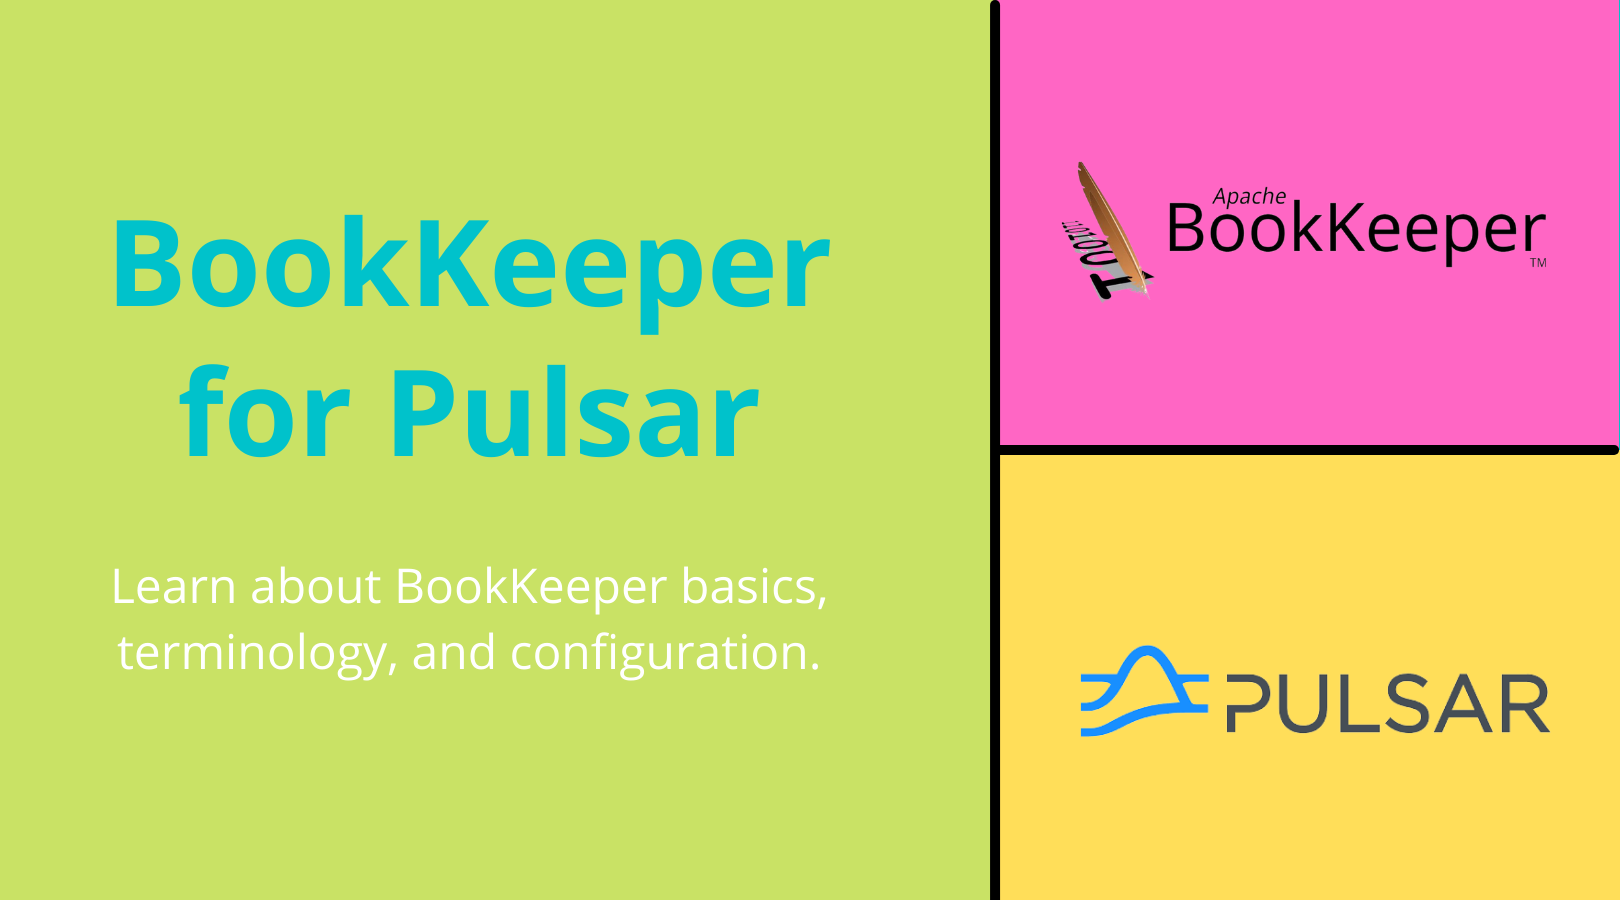 Apache BookKeeper for Pulsar